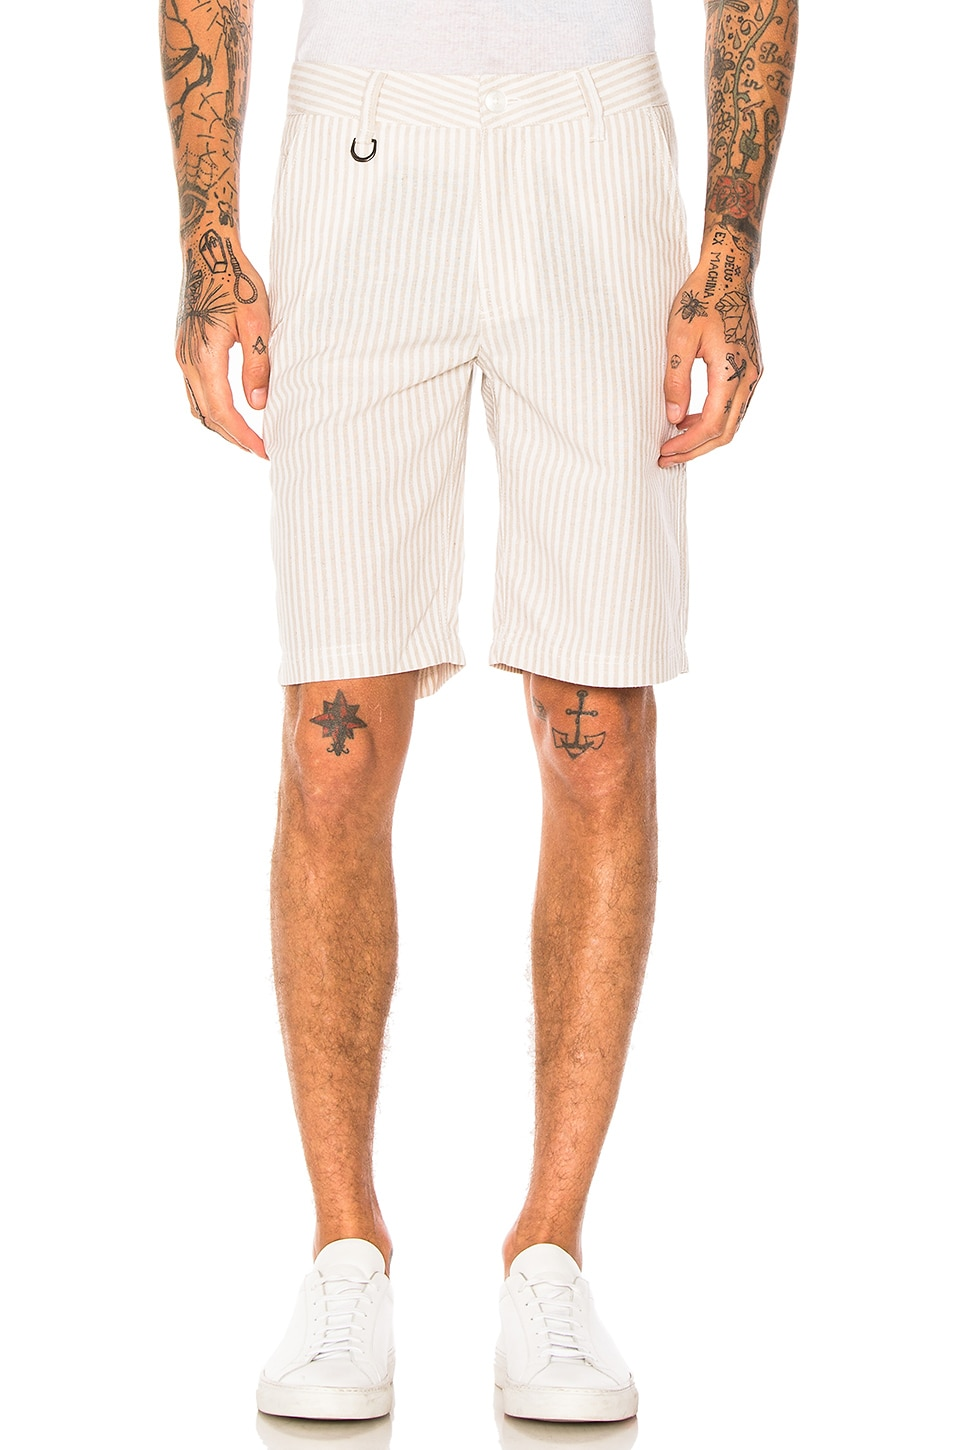 Barnaby Shorts by Publish